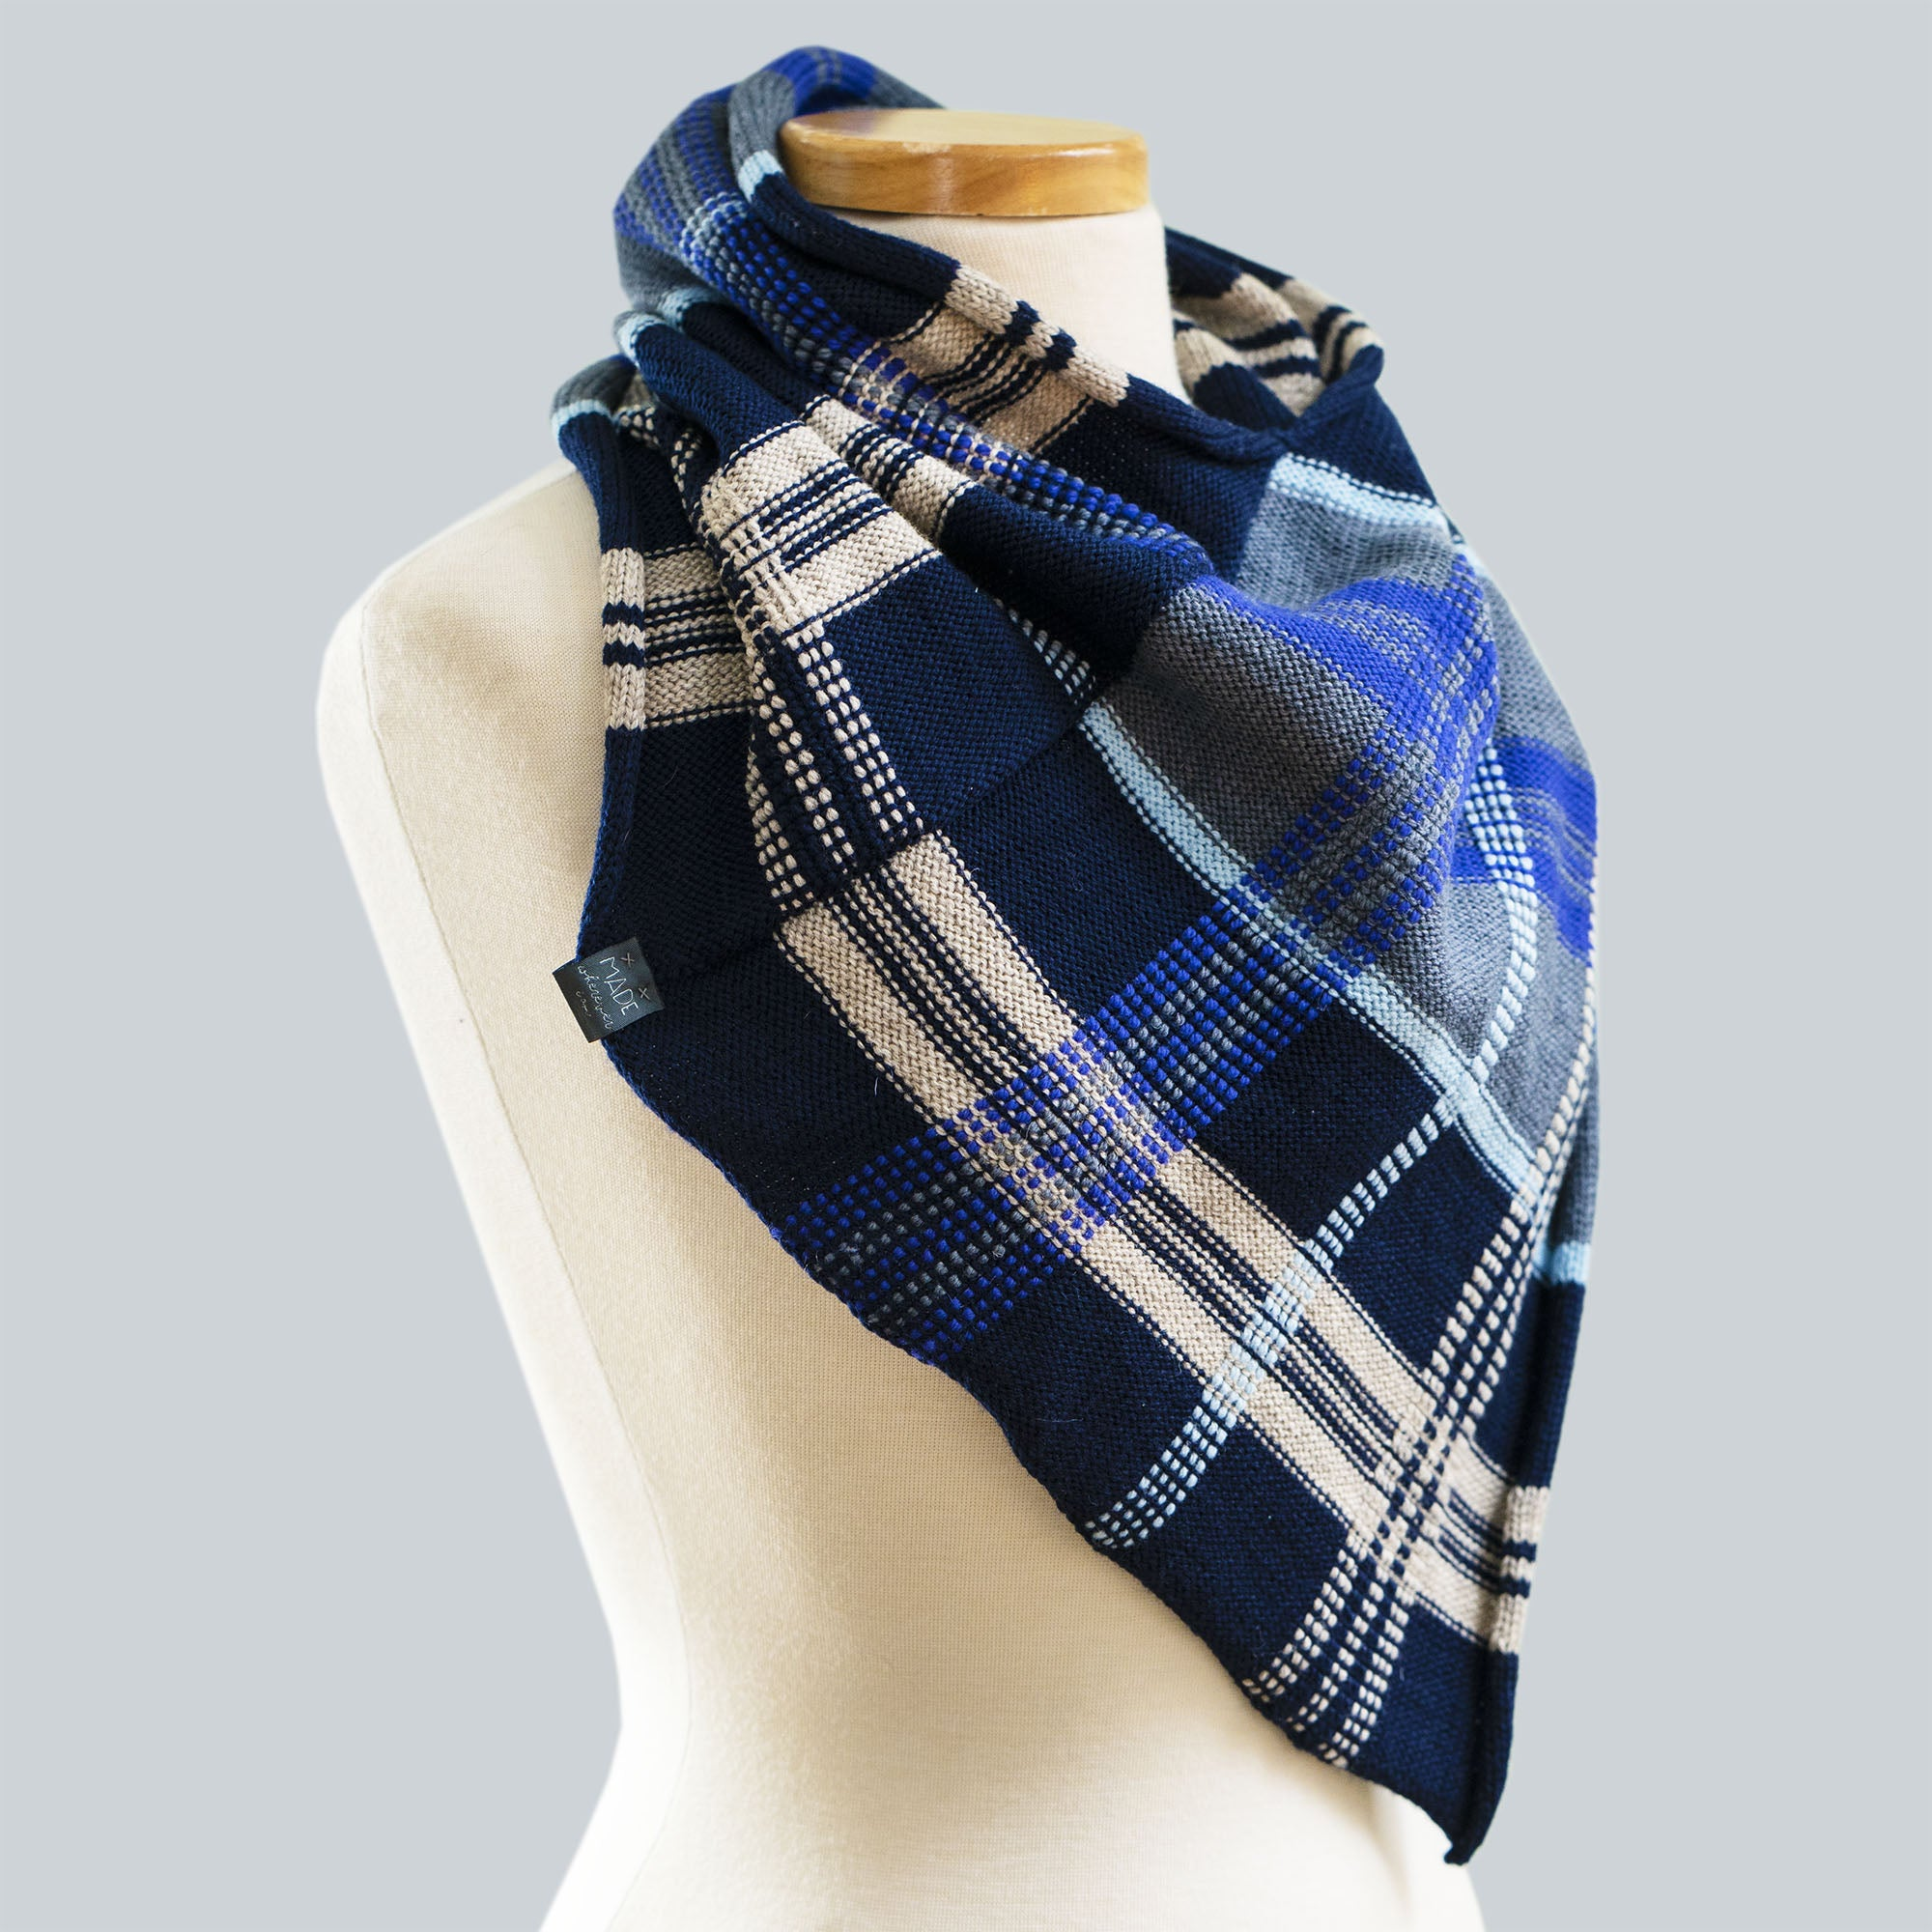 WHOLESALE Sydney - 100% Wool Bandana Scarf